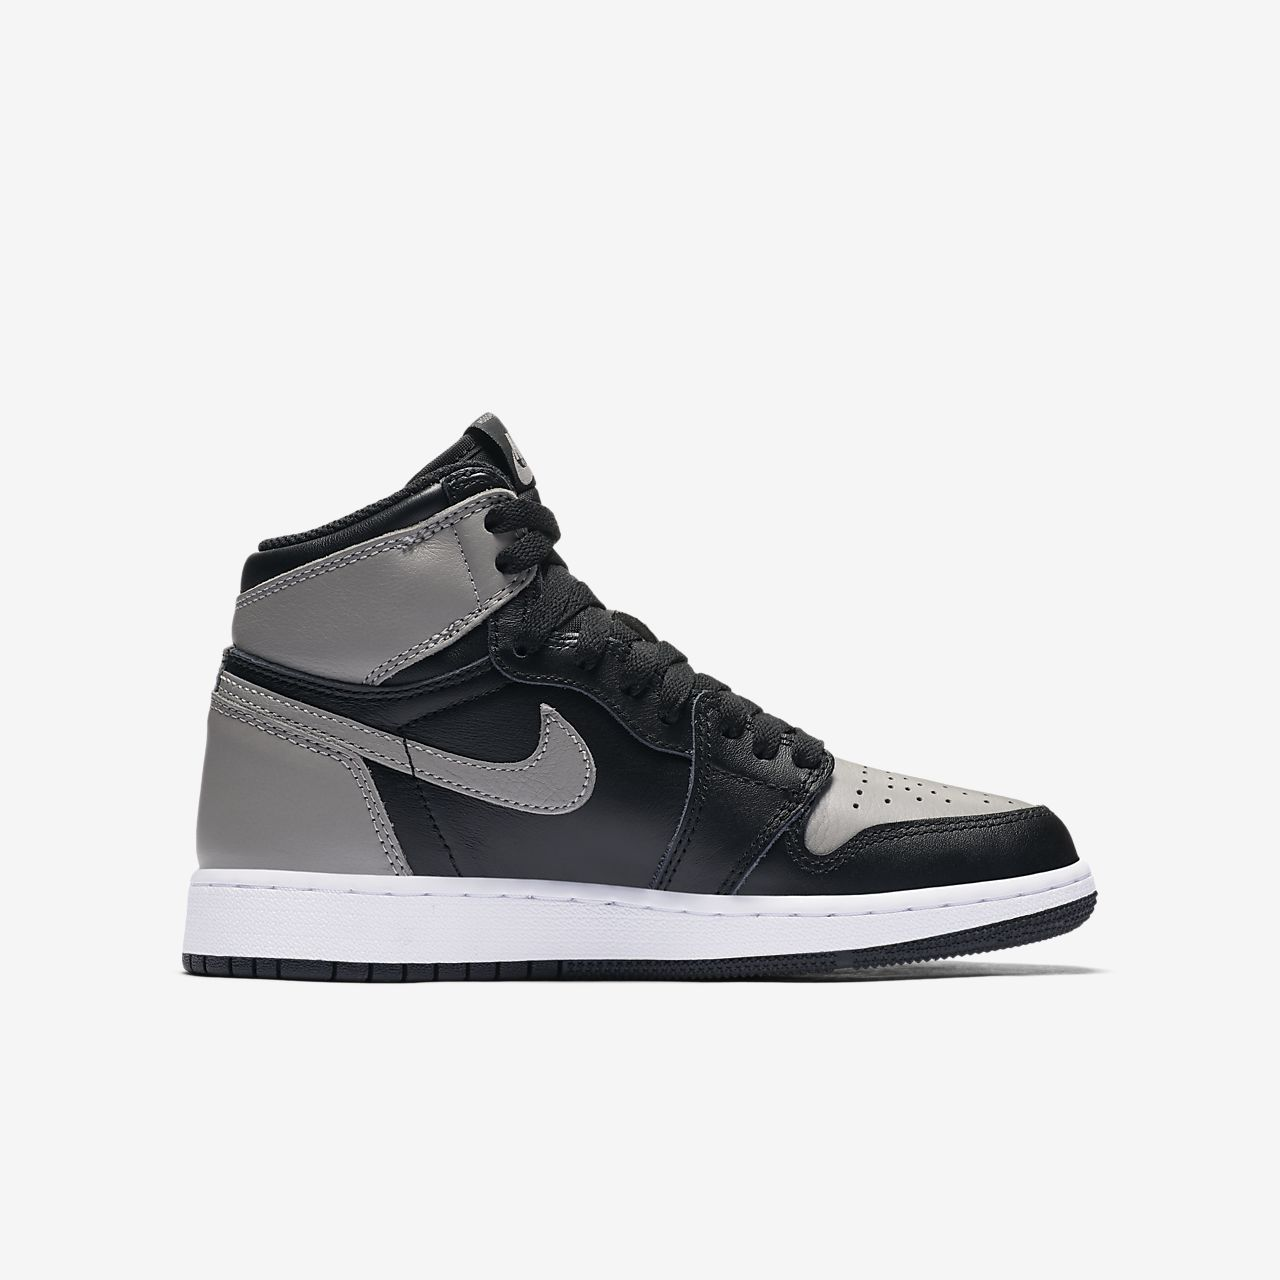 Chaussures Nike Air Jordan 1 Retro High OG BG B30hKEDPH